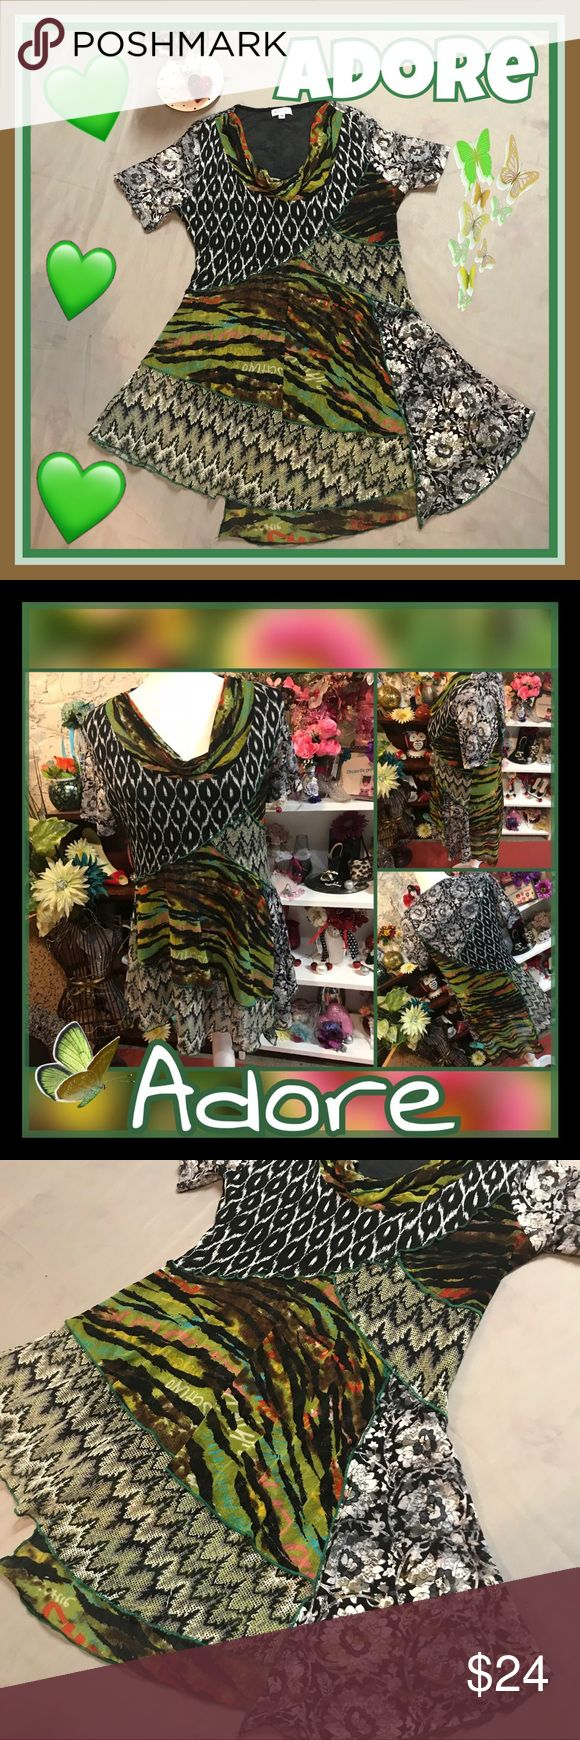 Adore A-Symmetrical Tunic-Dress Truly unique Asymmetrical cut ..multi patterned...tunic to wear with leggings or short dress. In excellent used condition.. no holes or stains. Just a few minute loose strings here and there😊 ..Please see all pictures.. Posted a lot of pics to show uniqueness of cut and beauty of this top/dress. 18 inch bust .,30 inch length at shortest point.. 32 inch length at longest point.. please also feel free to comment any questions. keep in mind preowned items are…